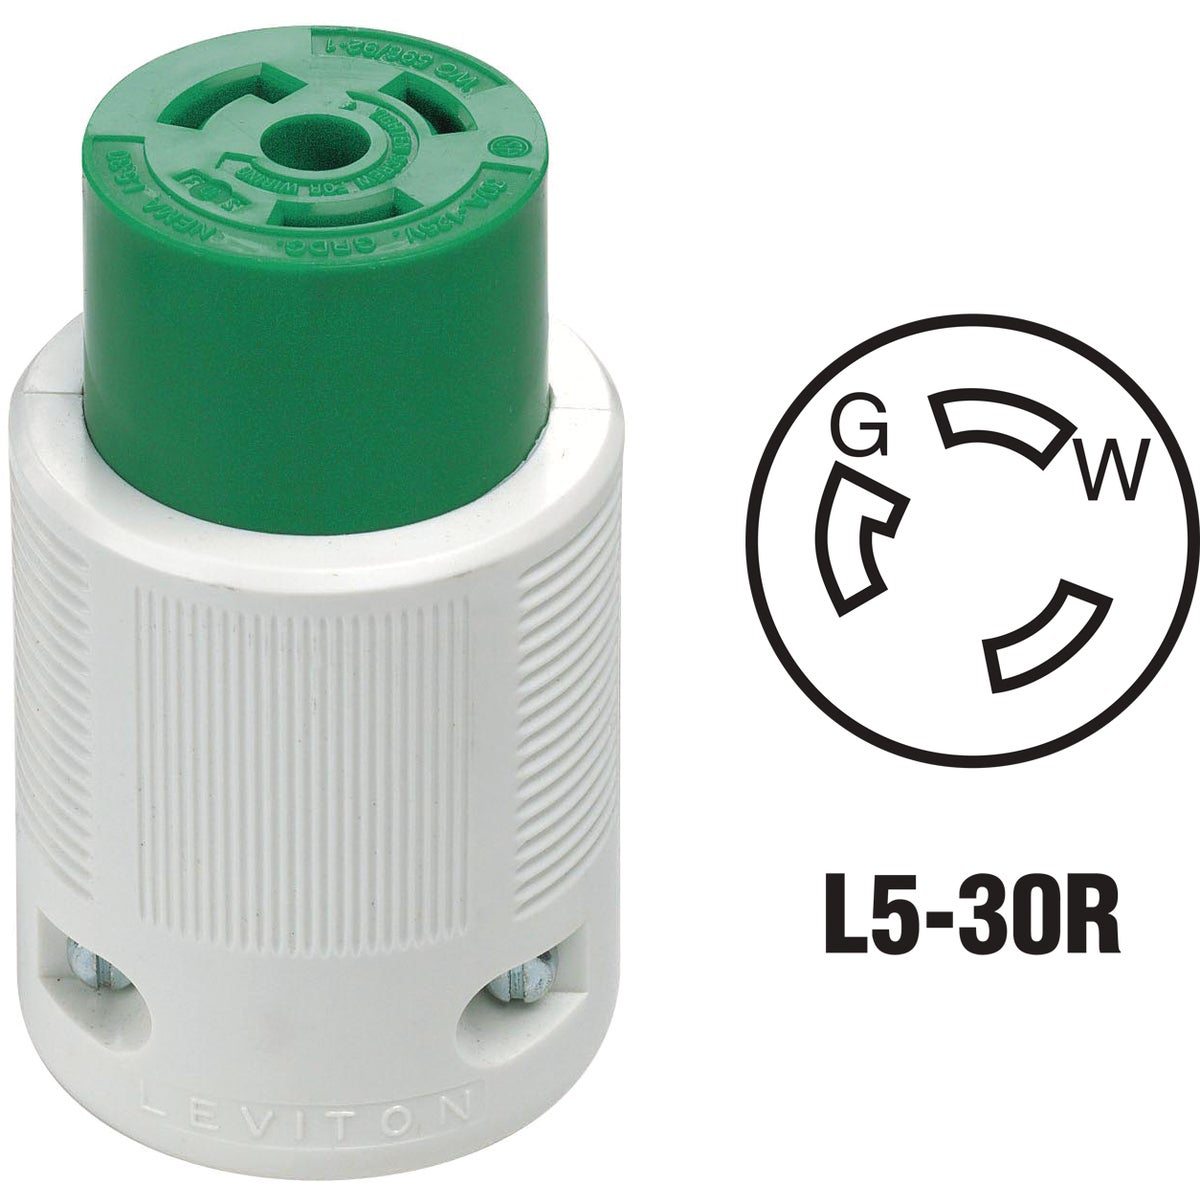 30A LOCK CORD CONNECTOR - 70530LC by Leviton Mfg Co